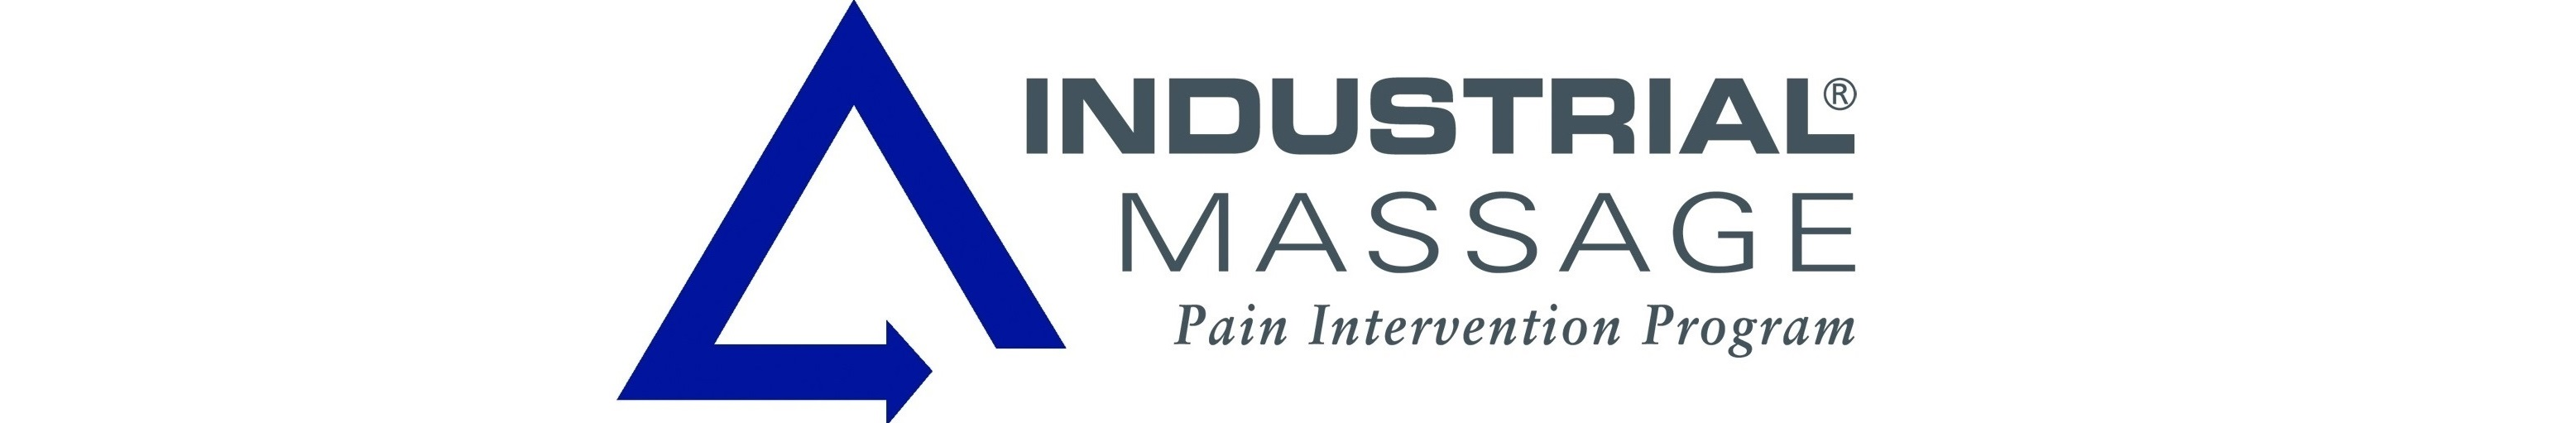 Industrial Massage